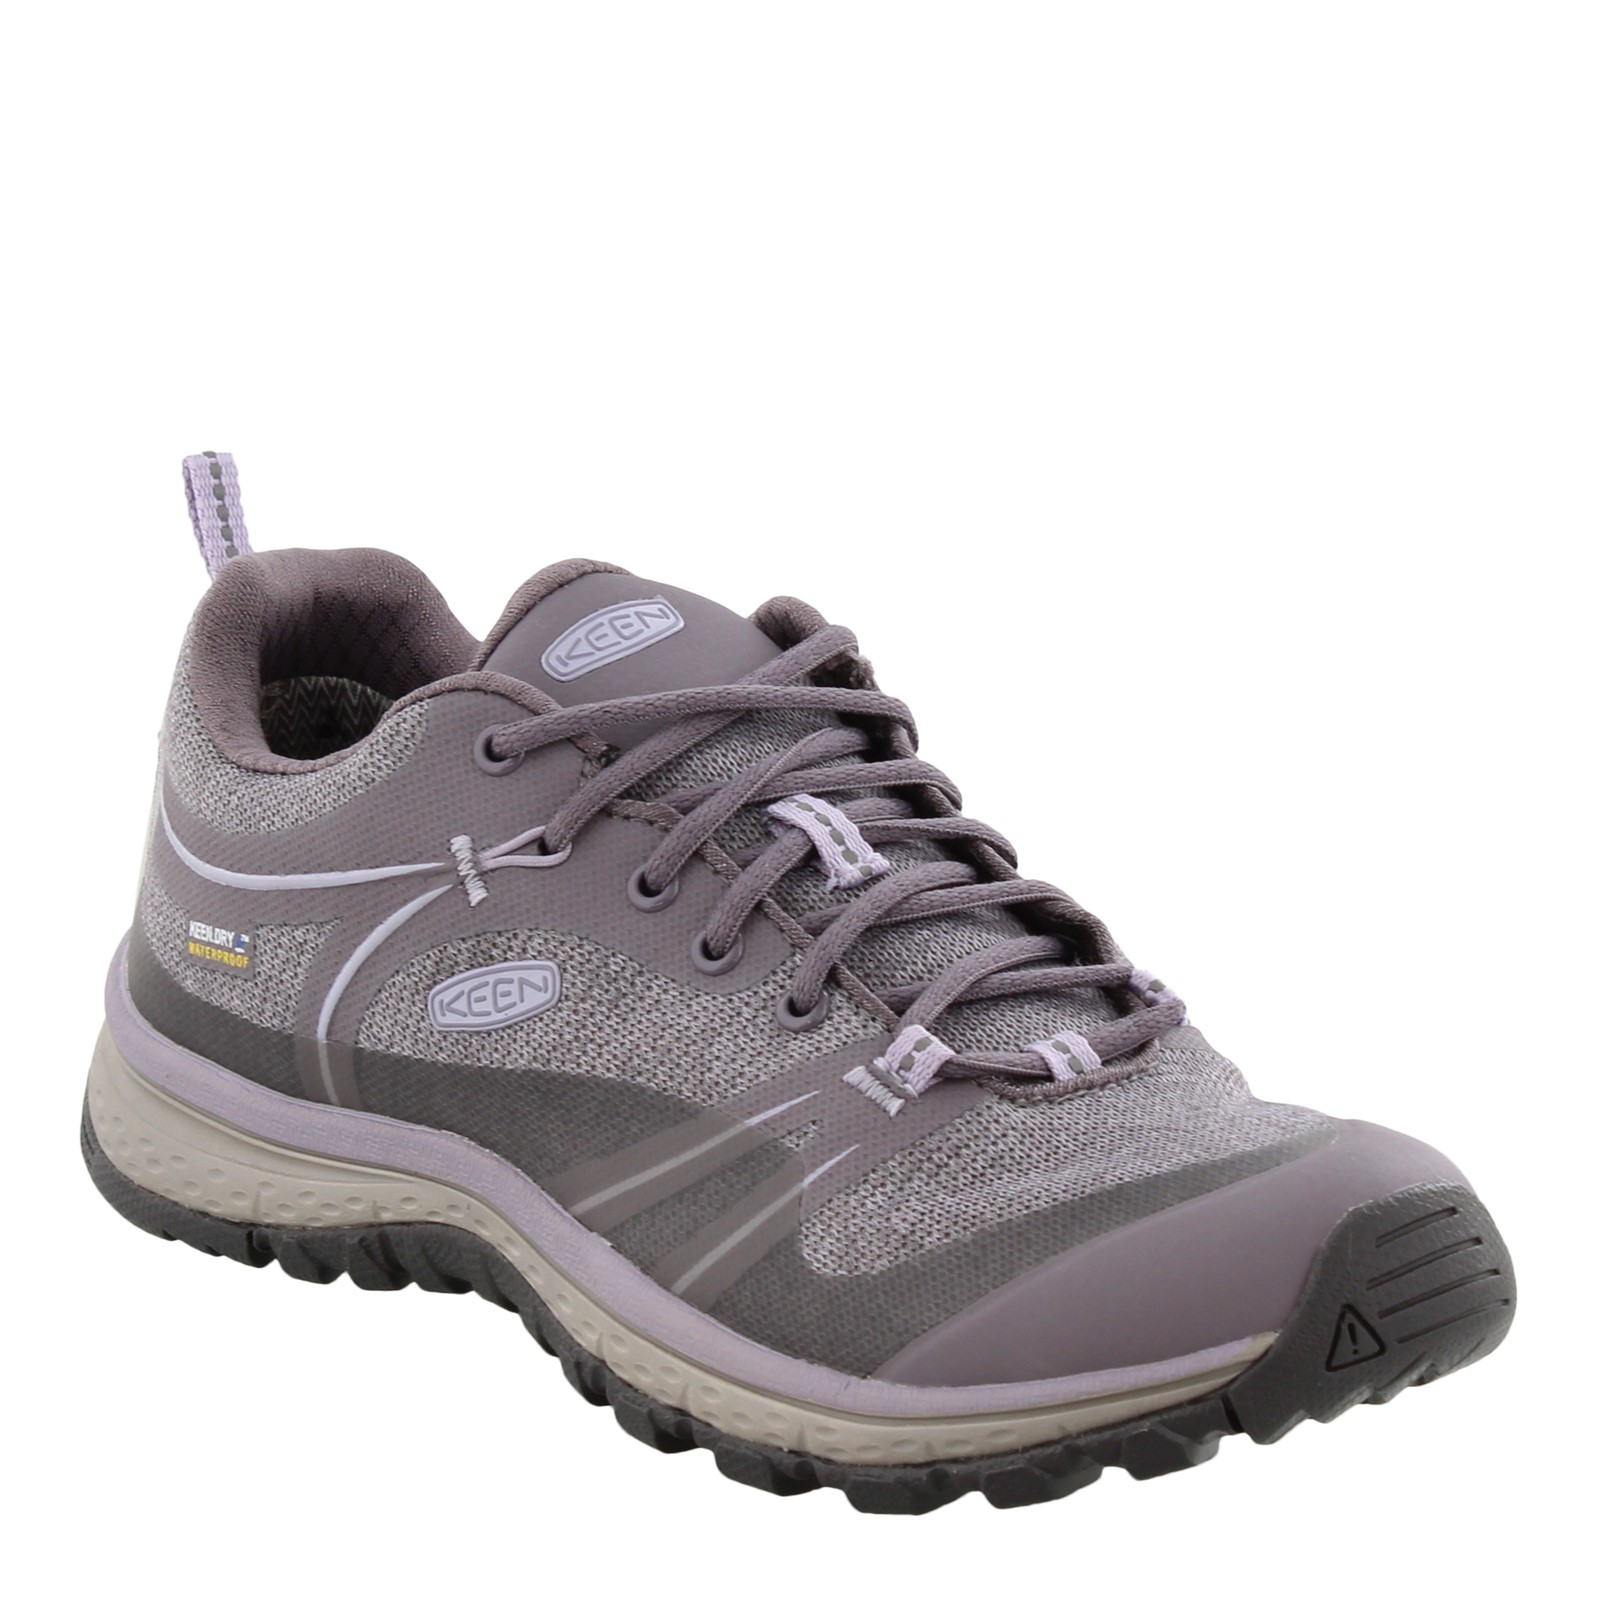 Women's Keen, Terradora Waterproof Hiking